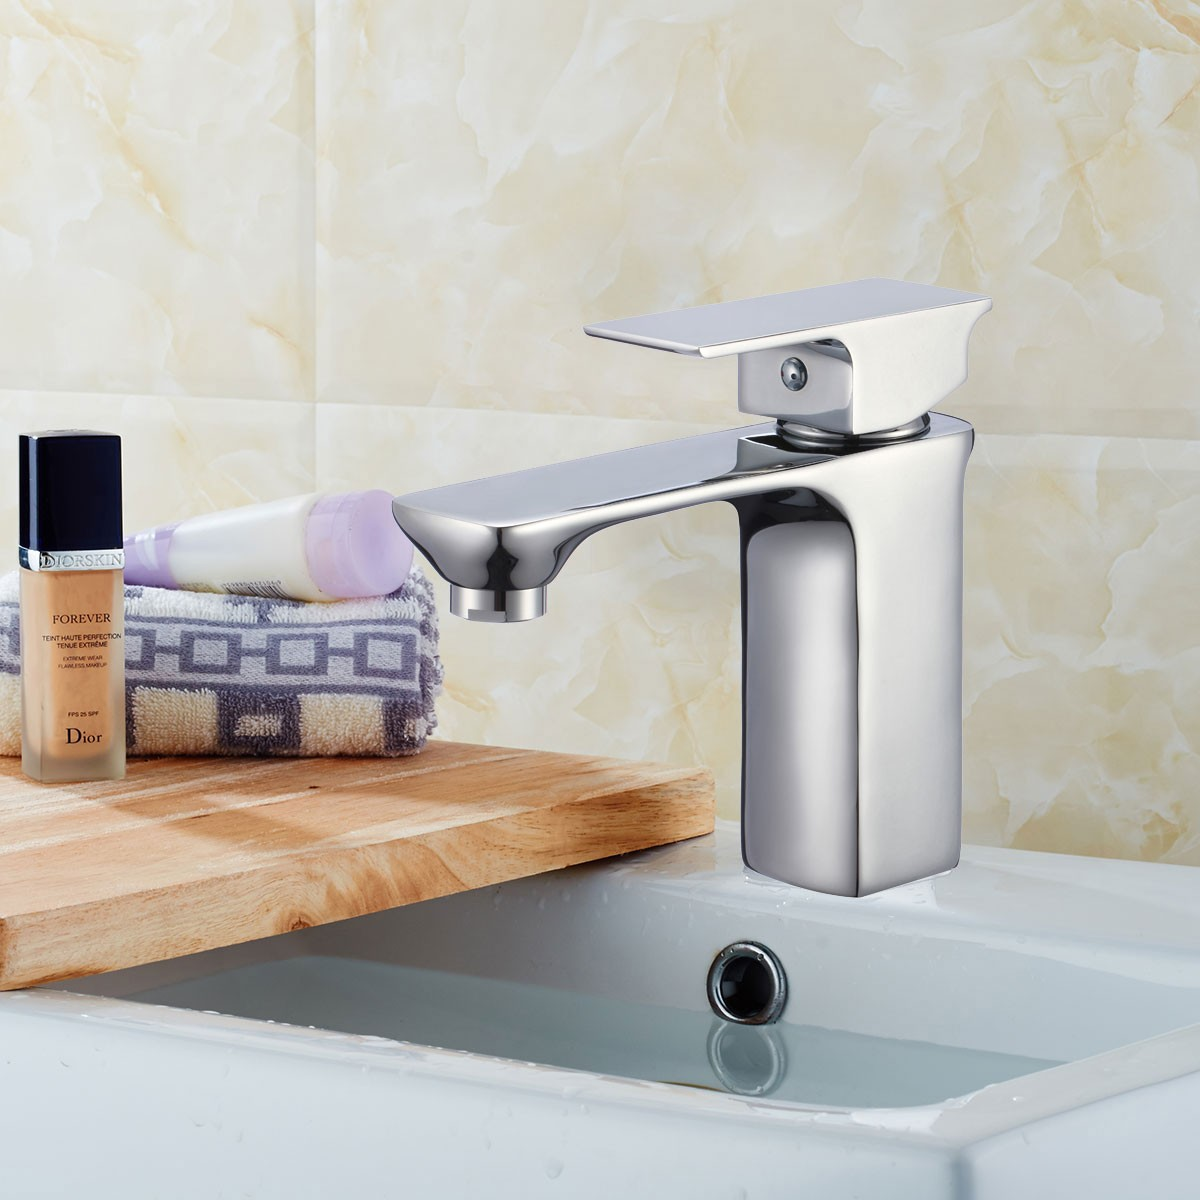 Basin&Sink Faucet - Brass with Chrome Finish (81H36-CHR-007)